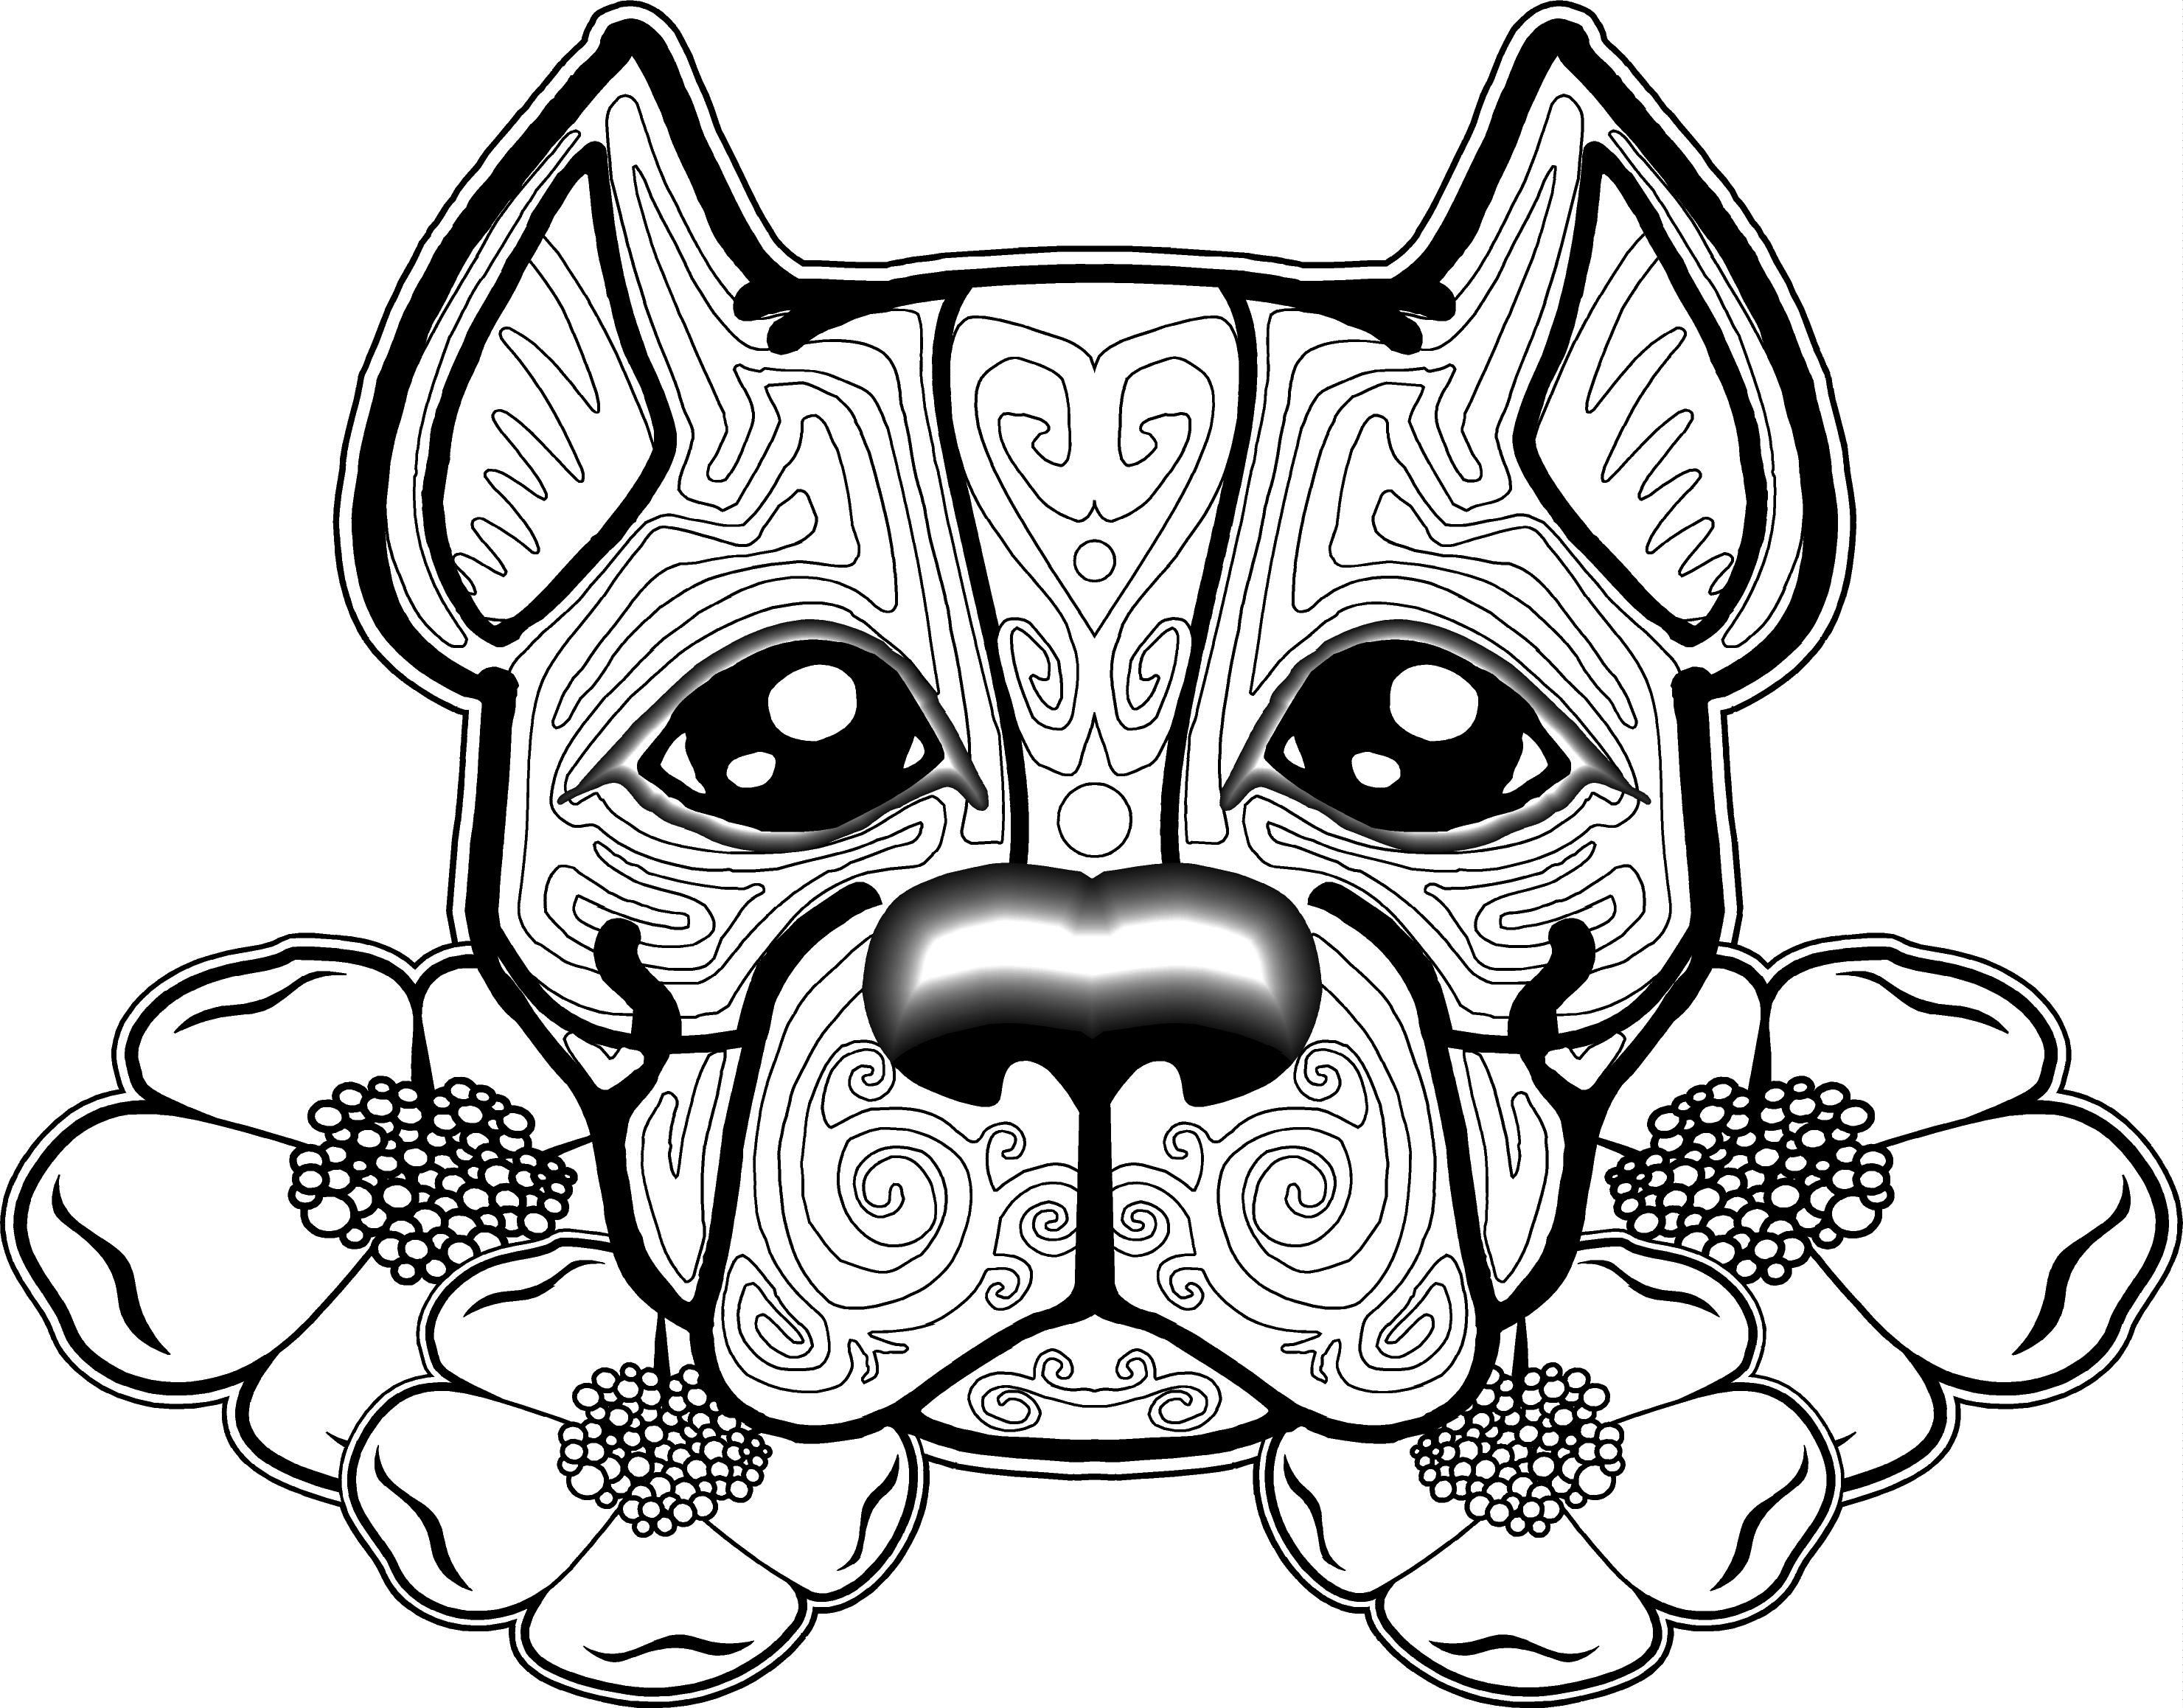 free dog coloring pages for adults - Free Coloring Pages Dog